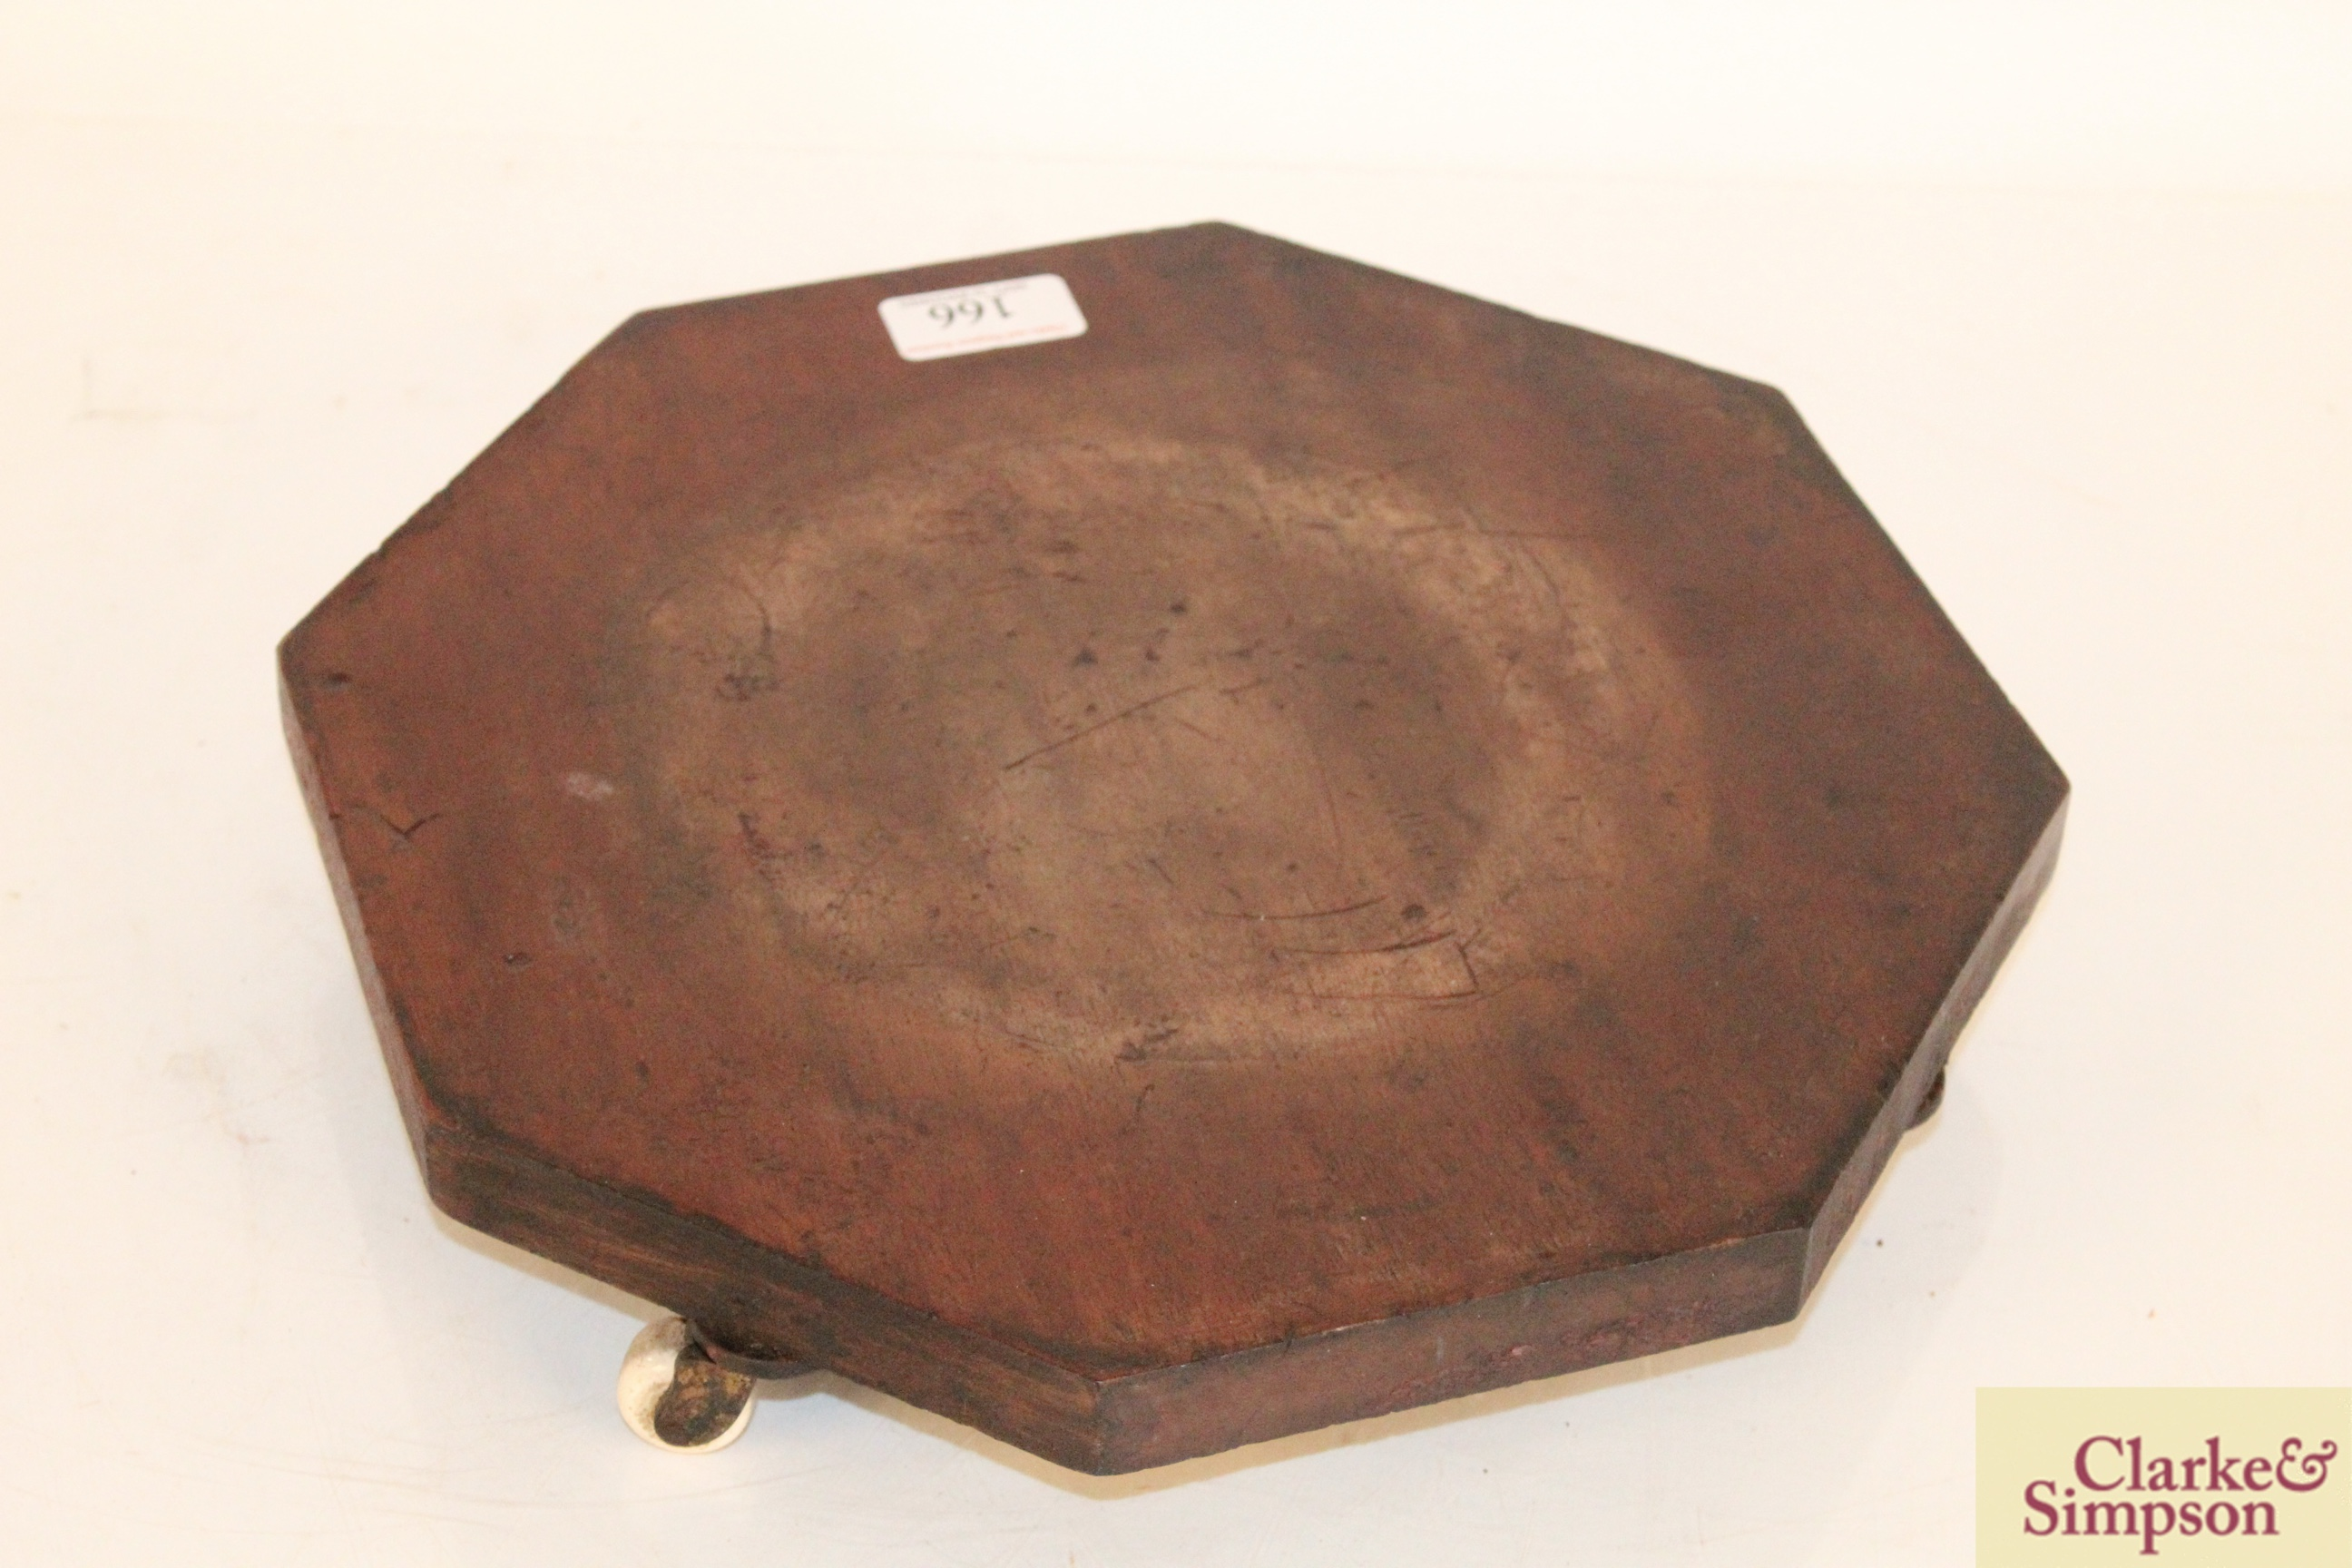 An early 19th Century octagonal cheese coaster on f - Image 2 of 4